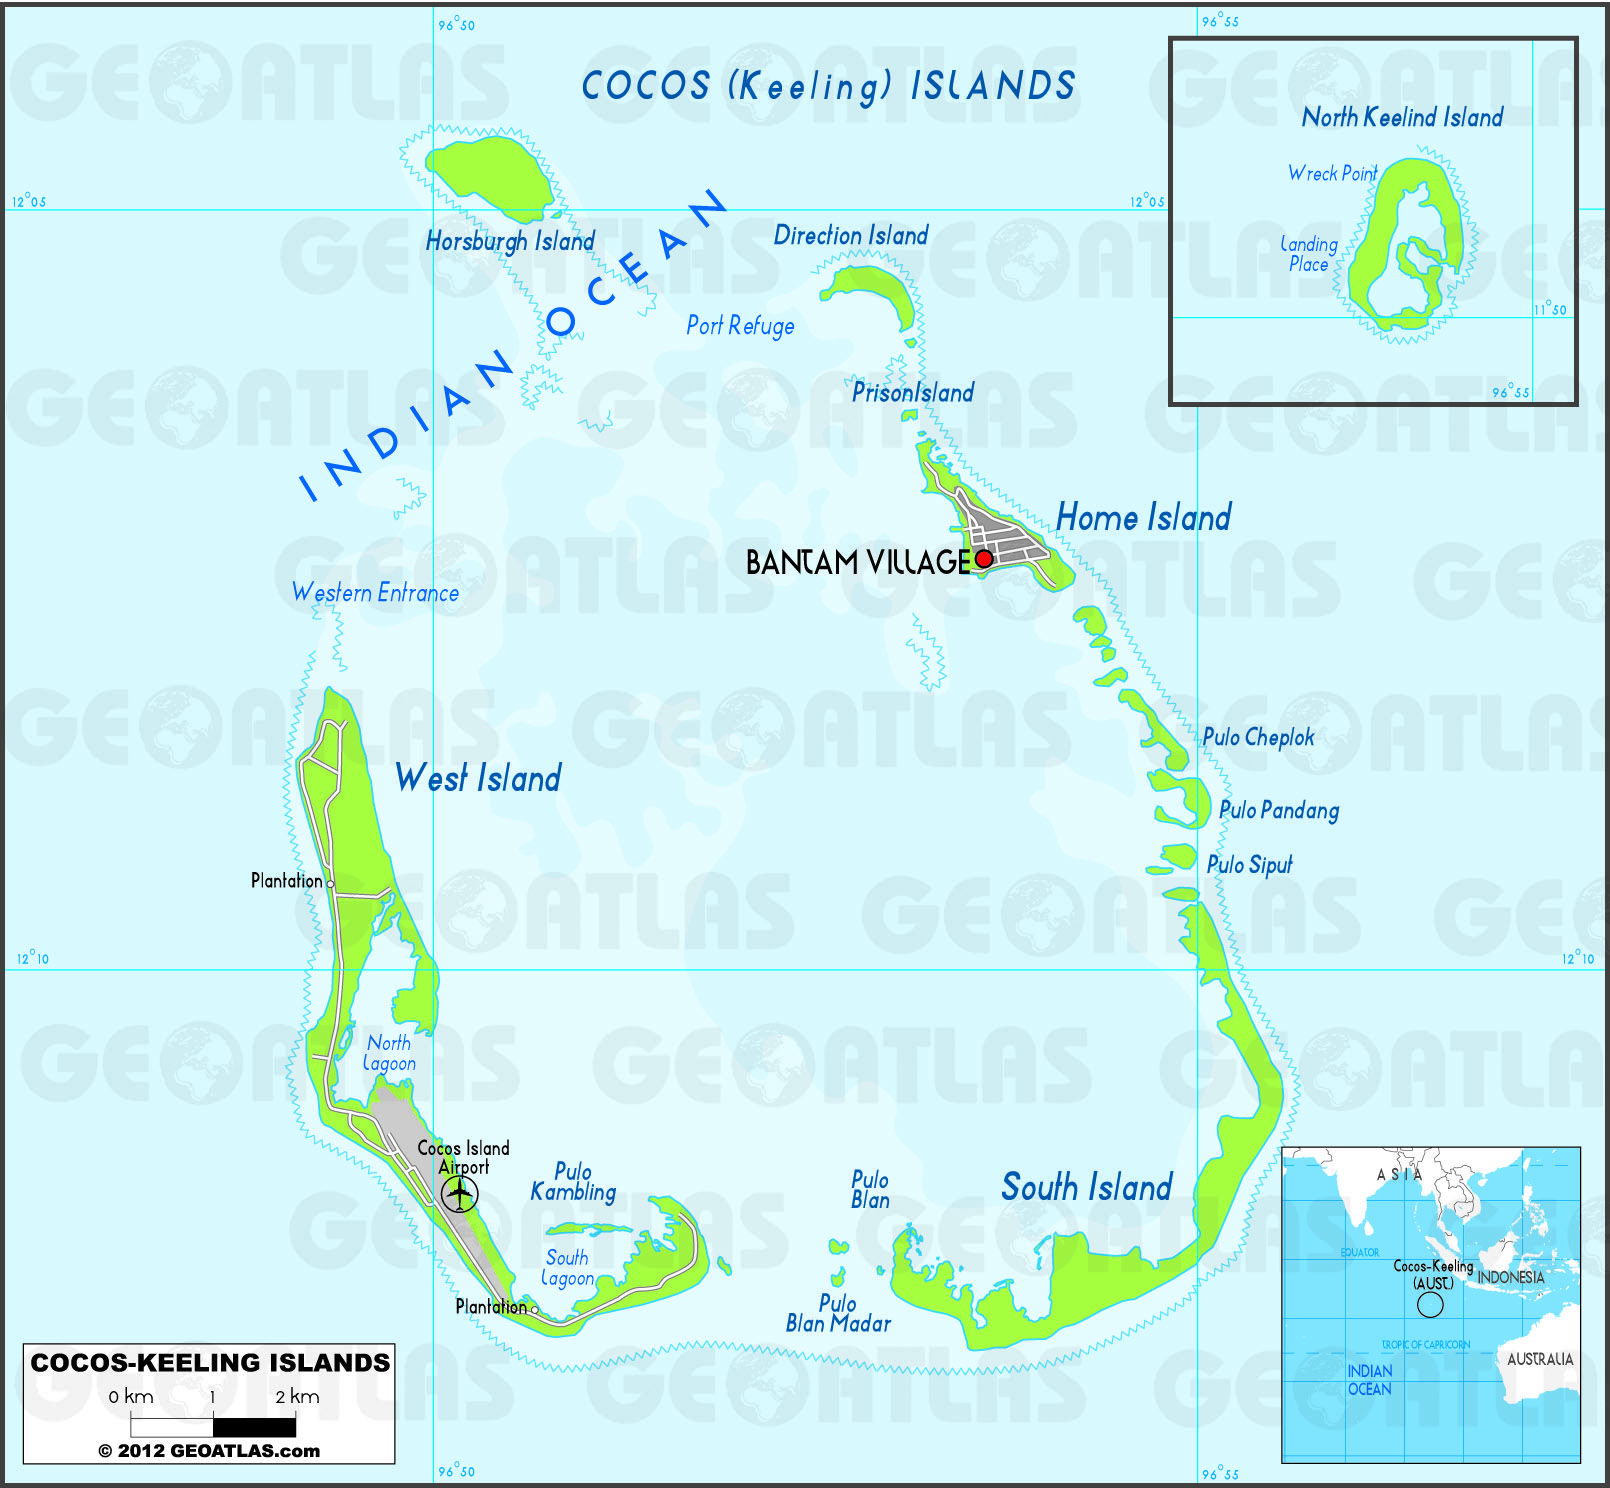 Cocos Island: The Territory Of The Cocos (Keeling) Islands, Also Called